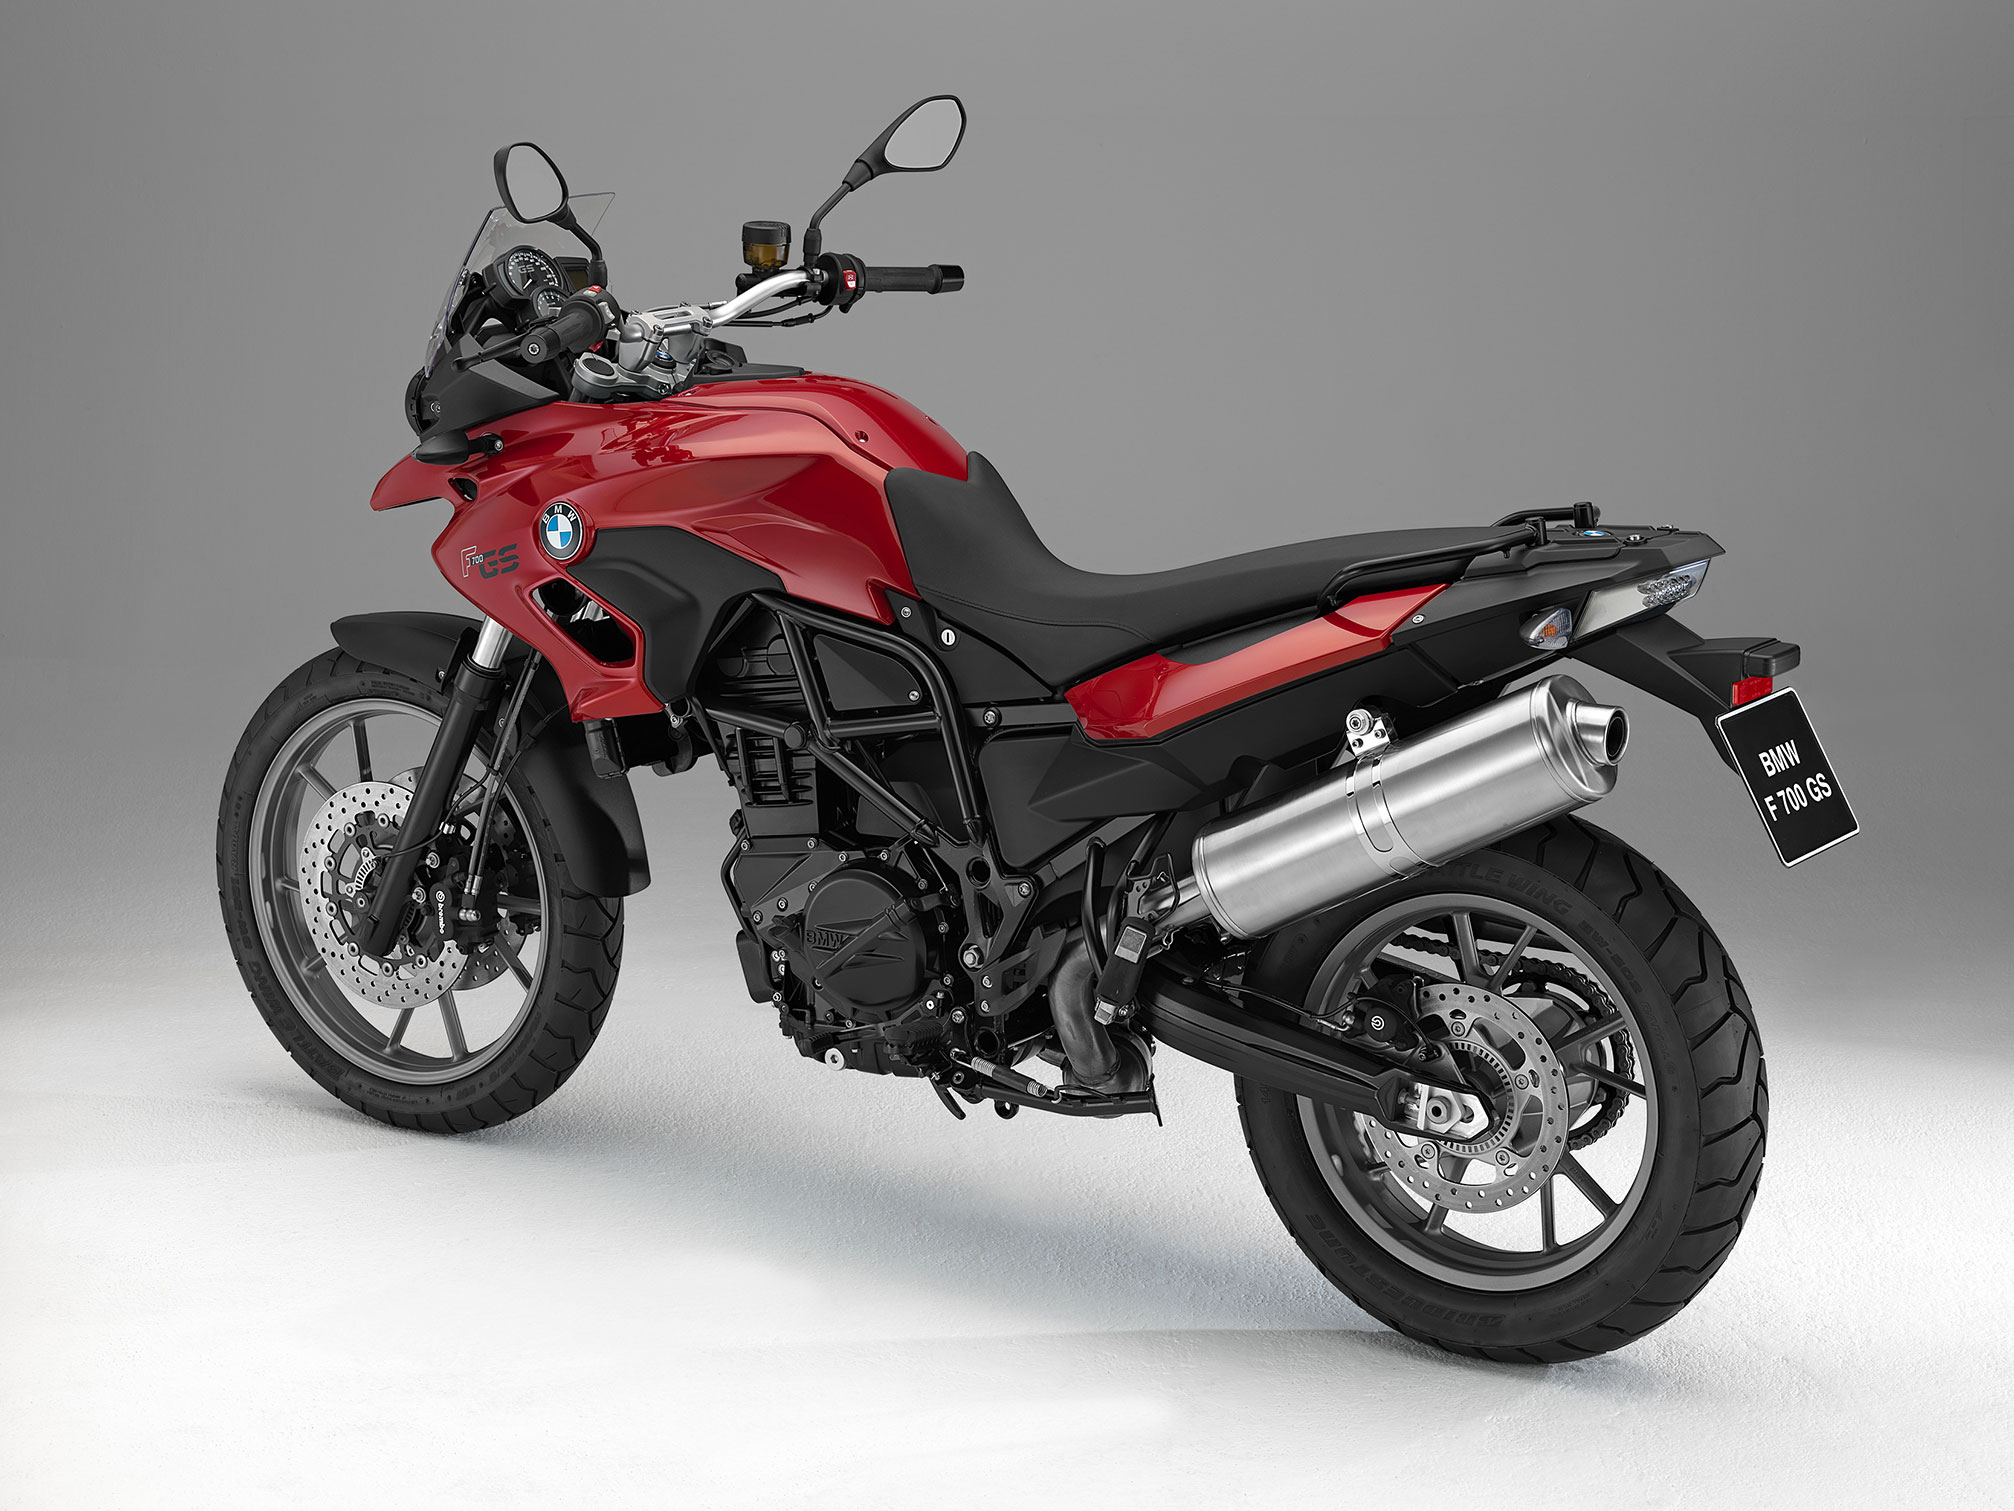 bmw f 700 gs specs - 2013, 2014 - autoevolution